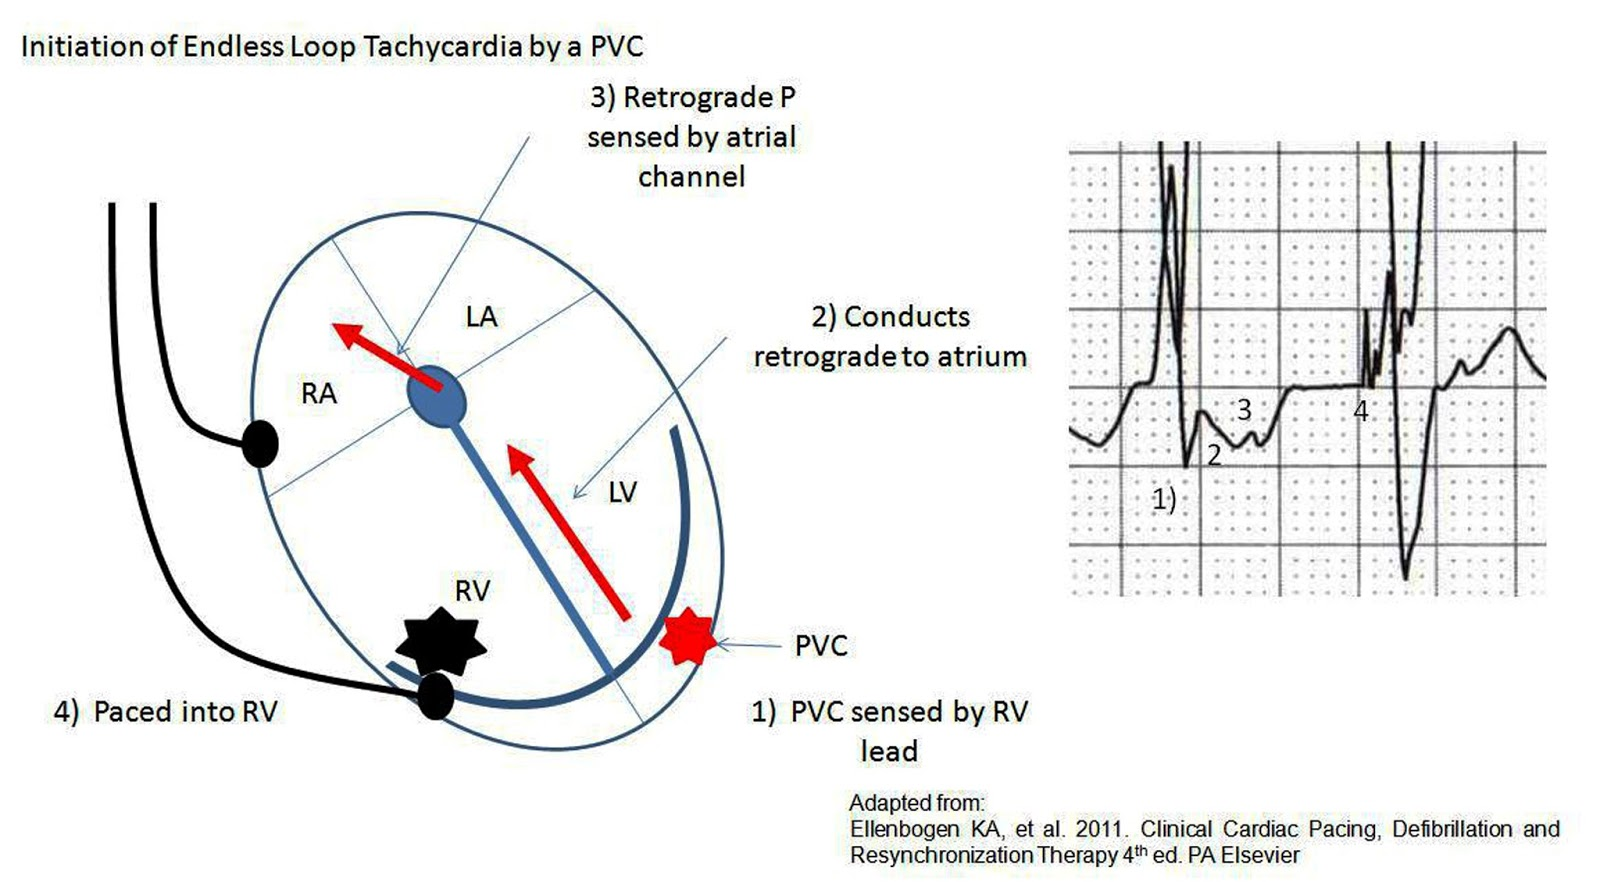 ecg rhythms  wide qrs tachycardia  wqrst  in a patient